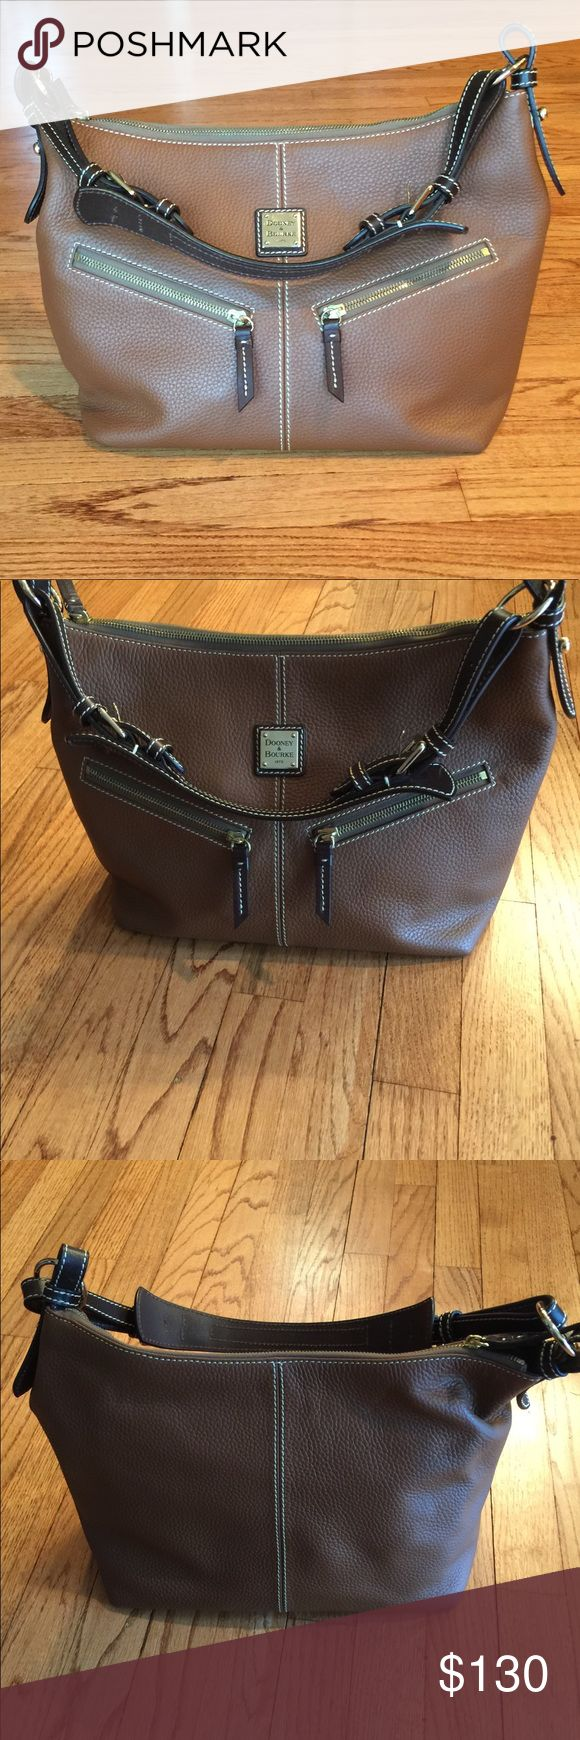 """BNWOT Dooney & Bourke BrownAllWeather Leather Hobo BNWOT Chocolate brown pebbled all weather leather. Excellent condition, never used. Comes with cosmetics case, key fob and dust bag.  Adjustable shoulder strap with buckle; zip-top close. Hobo bag interior: full lining, back wall zip pocket, front wall leather-trimmed cell phone pocket, leash for keys.   Hobo bag: measures 12""""W x 10""""H x 6-1/2""""D with an 8"""" to 10"""" strap drop; weighs 2 lbs, 3 oz Cosmetic bag: measures 6-1/2""""W x 4""""H x 2""""D  100%…"""